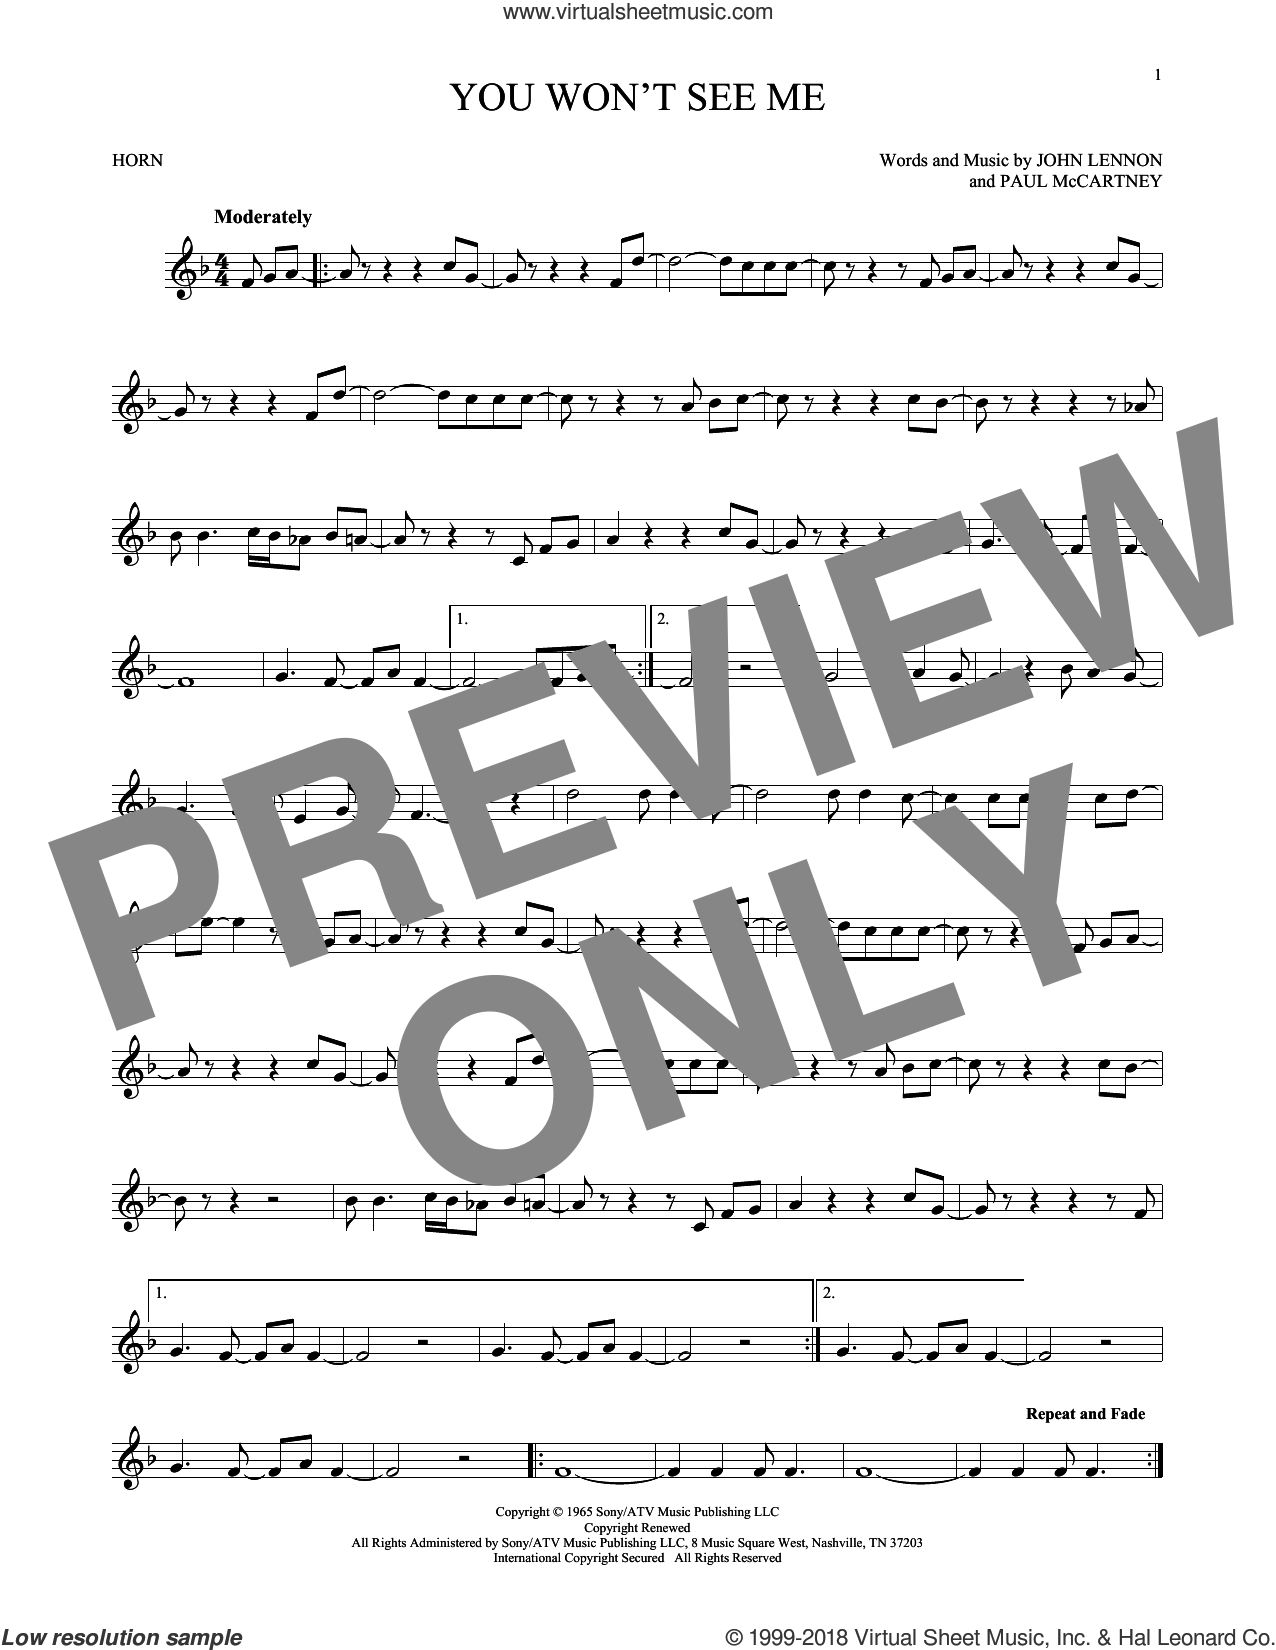 You Won't See Me sheet music for horn solo by Paul McCartney, The Beatles and John Lennon. Score Image Preview.